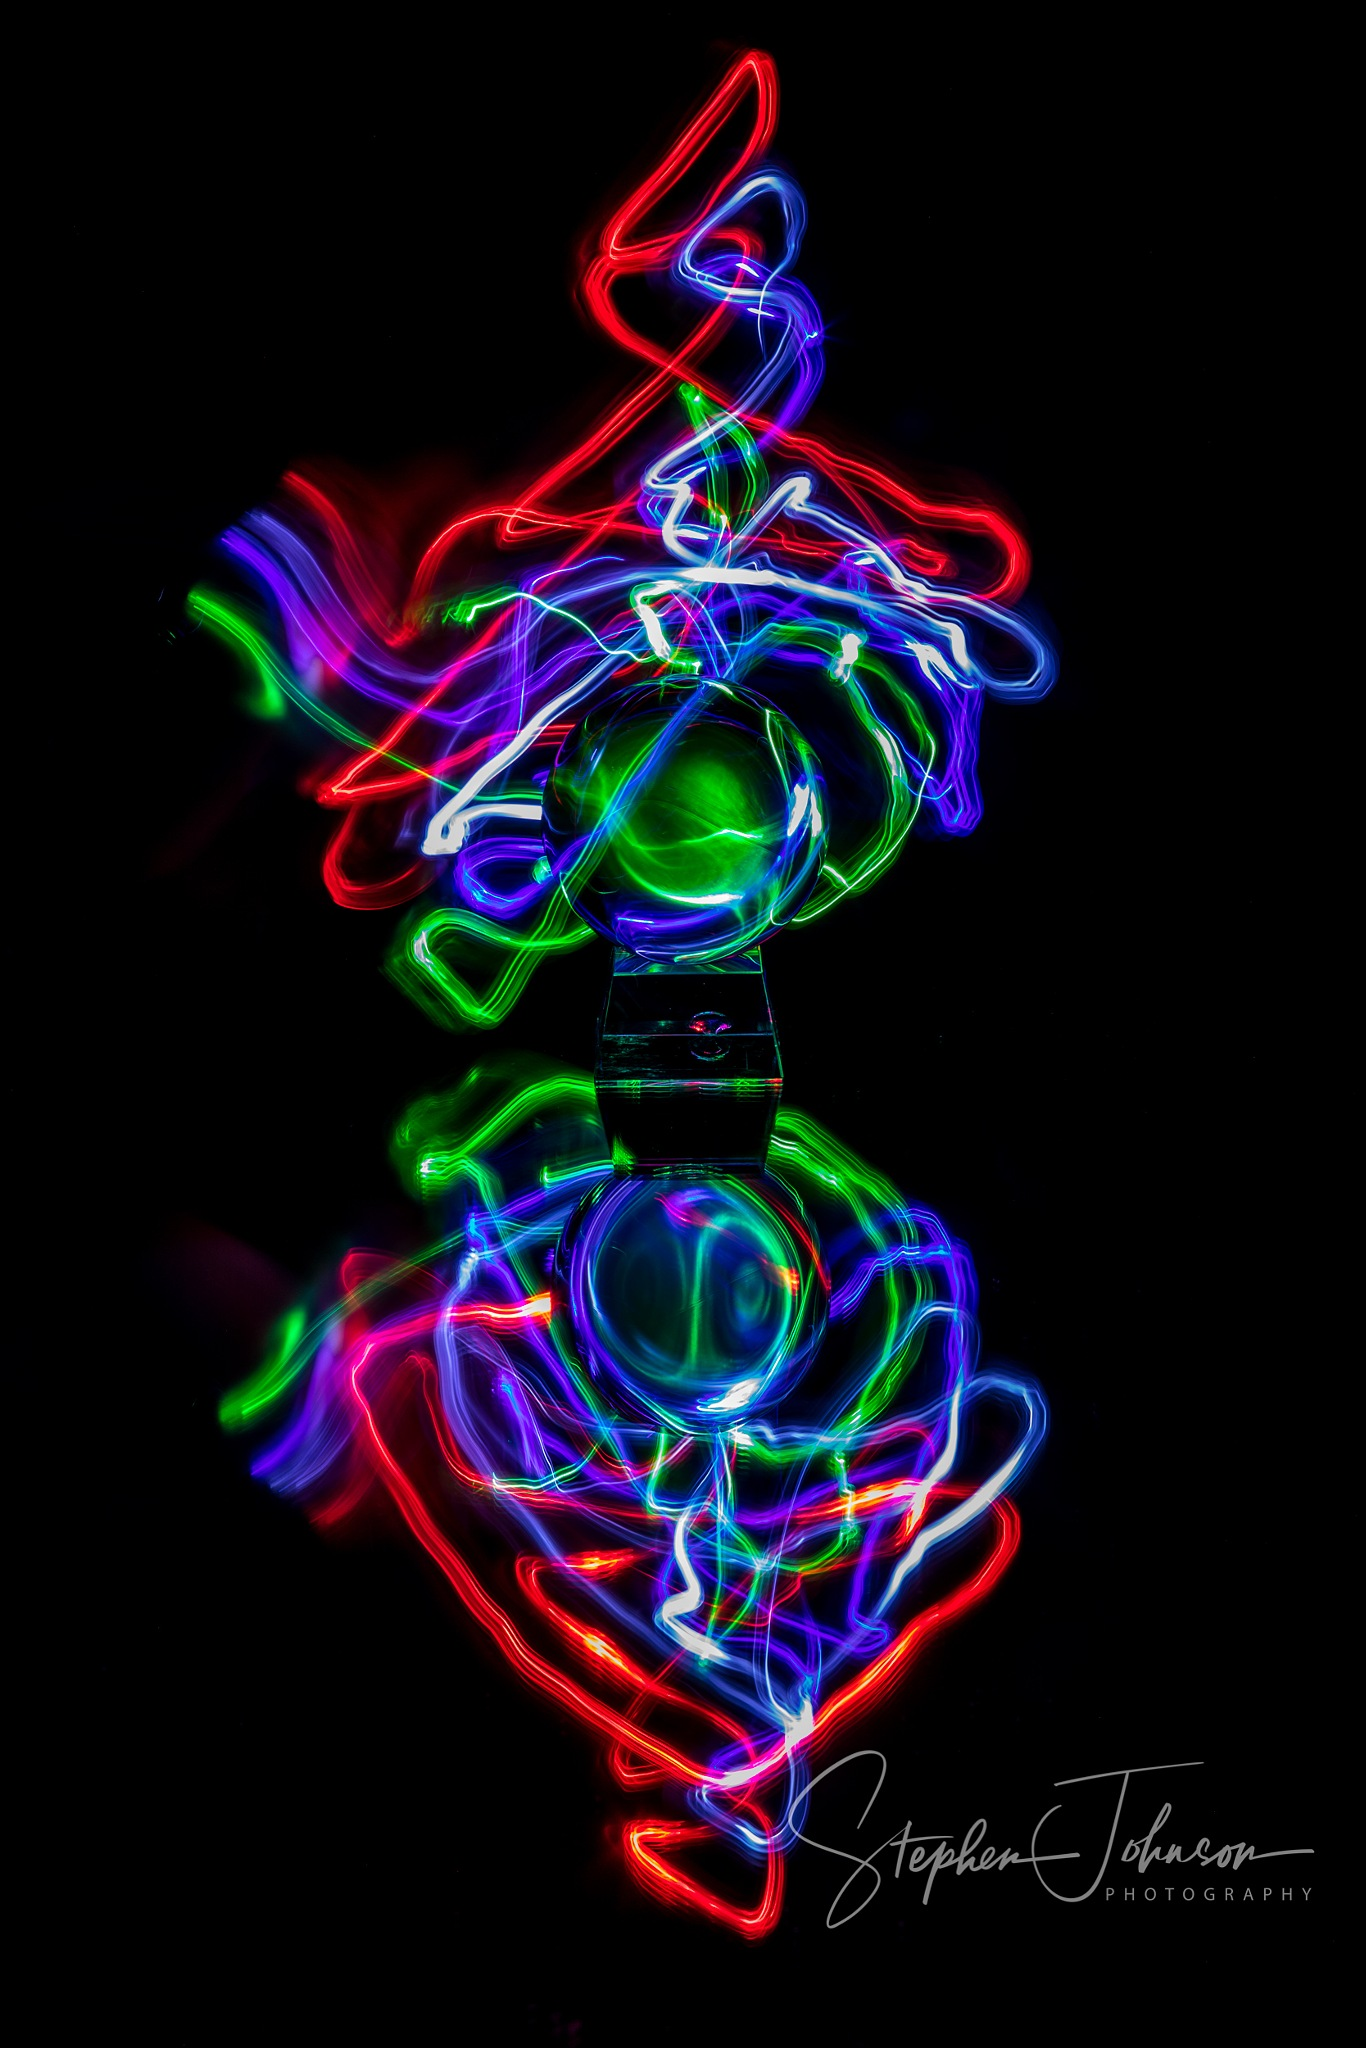 Light painting by Stephen Johnson Photography